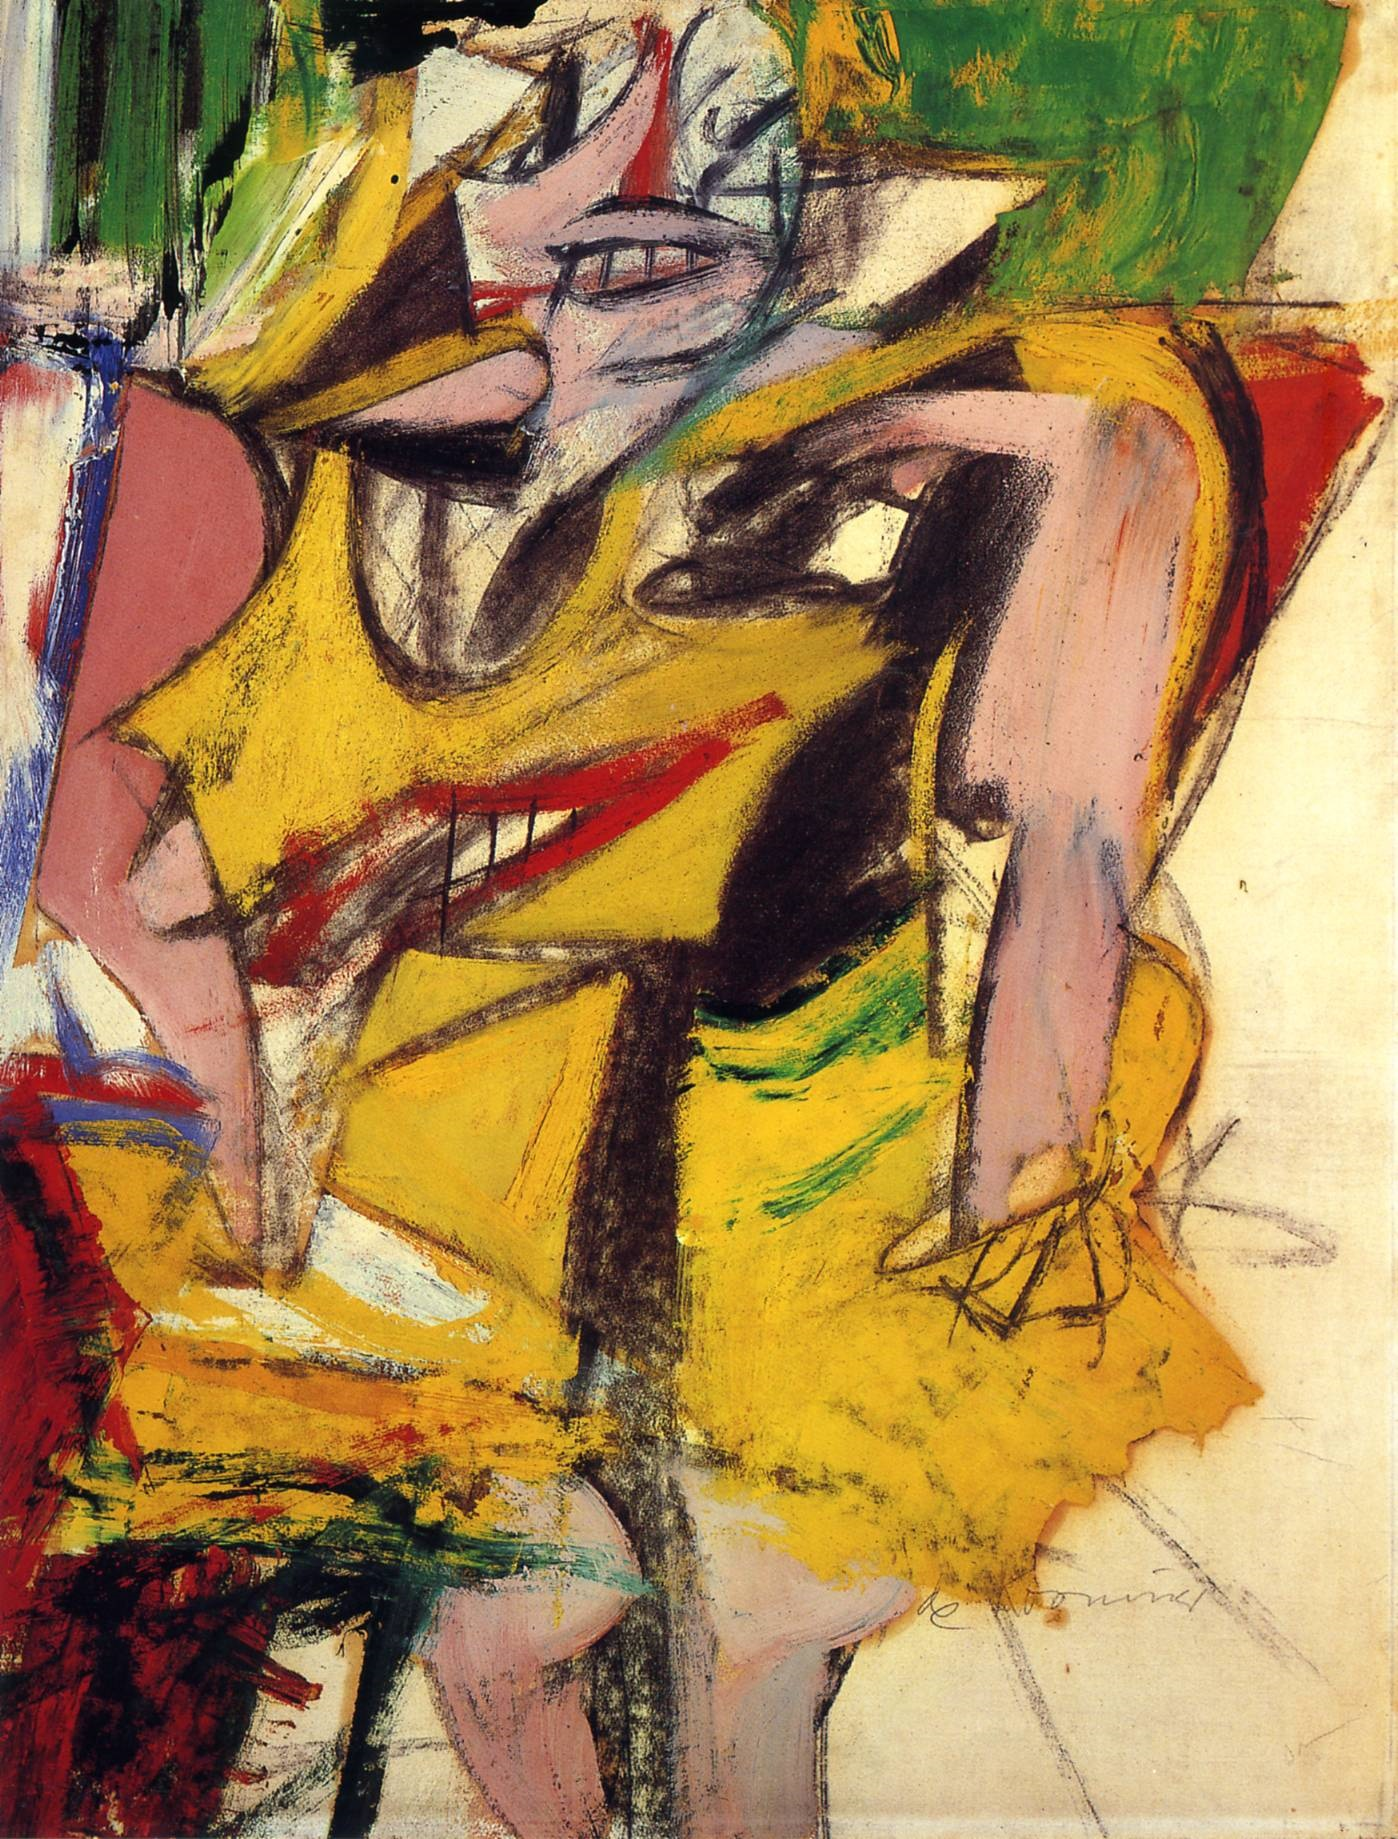 Willem de Kooning painting Woman 1953 Reproductions of paintings